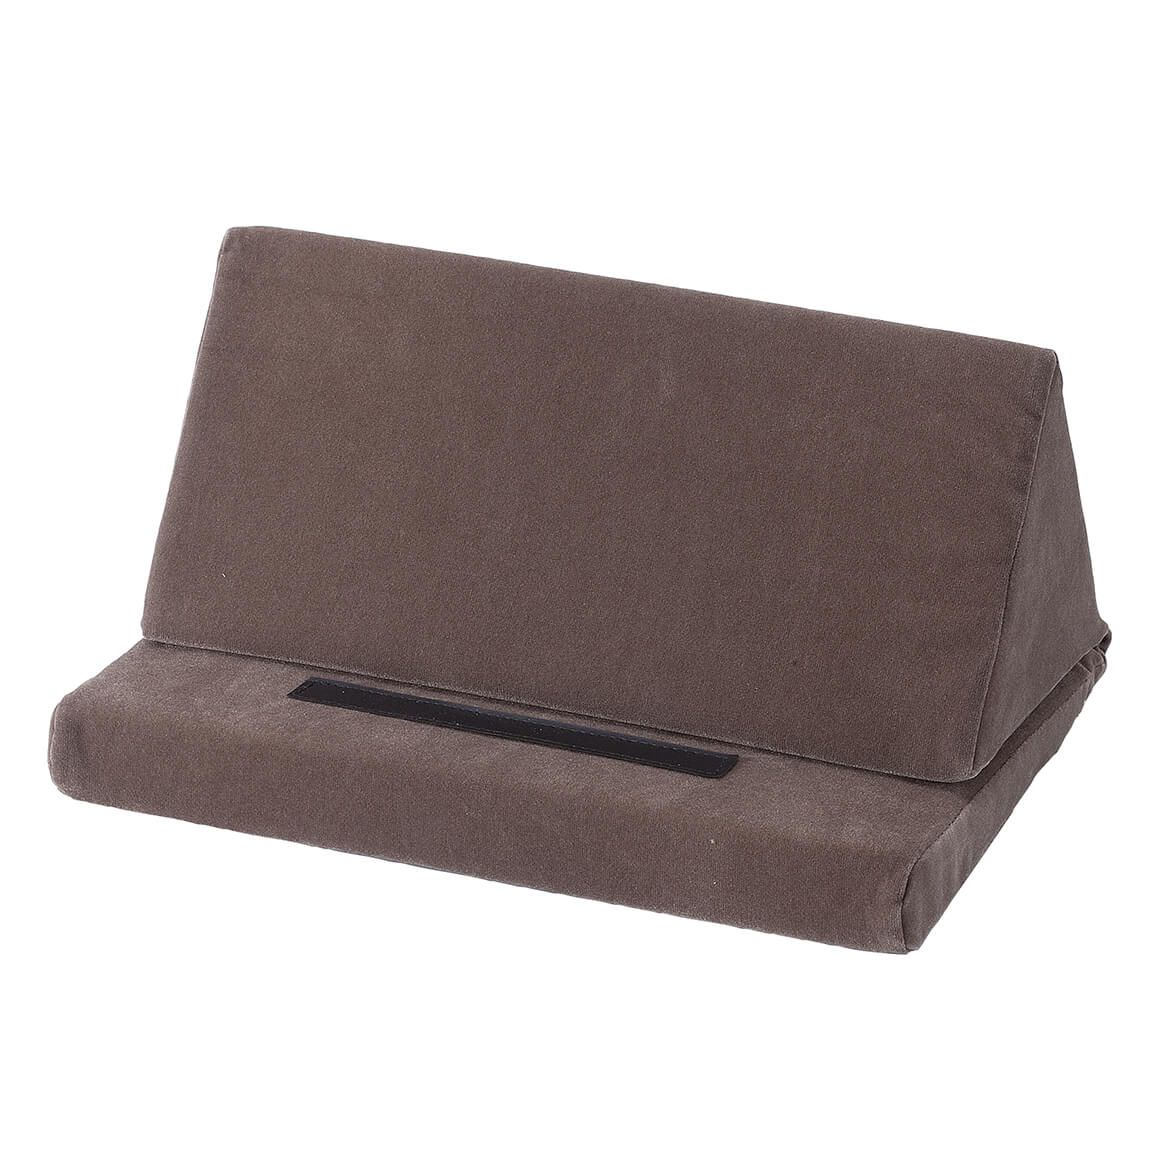 Wedge Book Pillow-353990